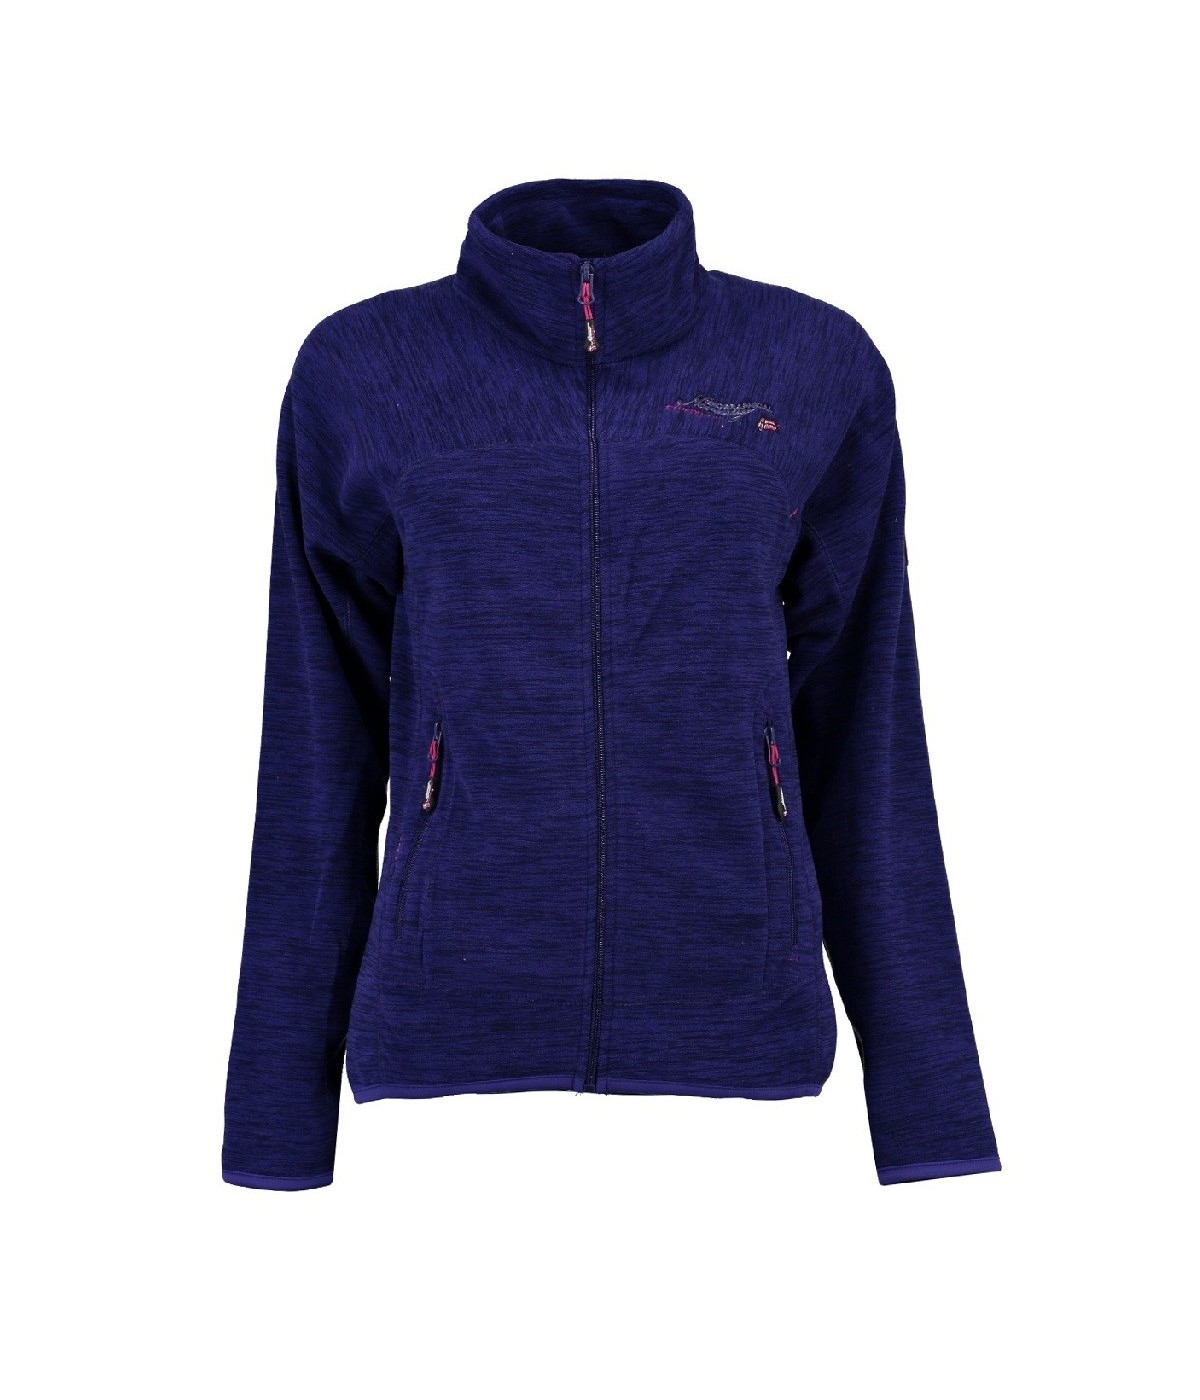 Polaire Femme Geographical Norway Talisman Violet